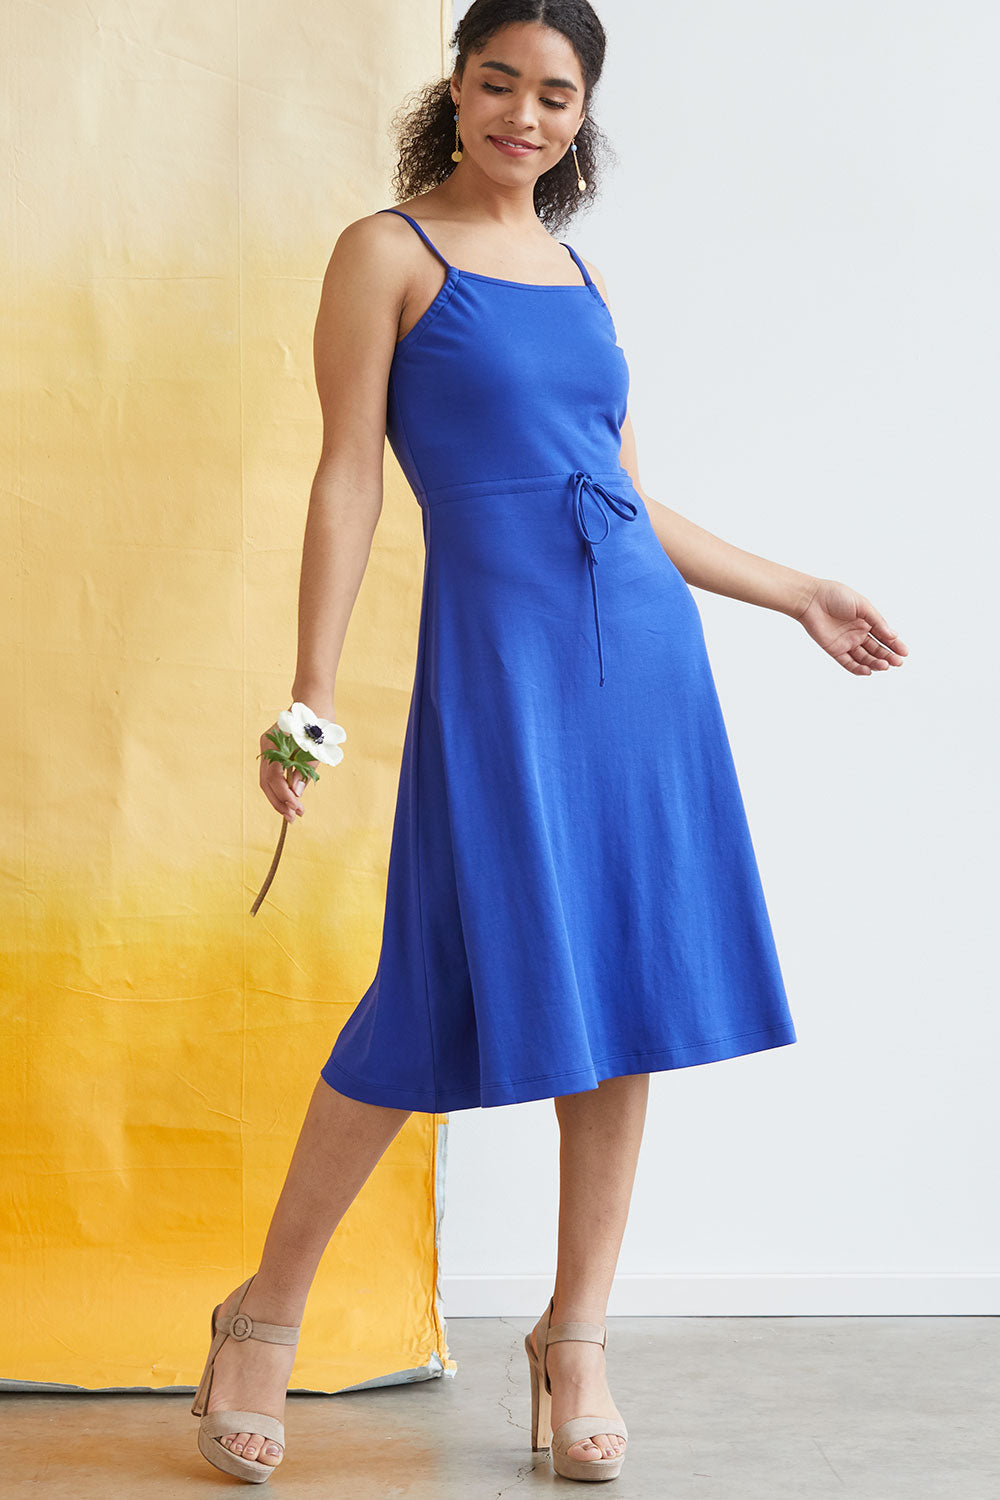 fair-indigo-womens-fair-trade-organic-convertible-halter-dress